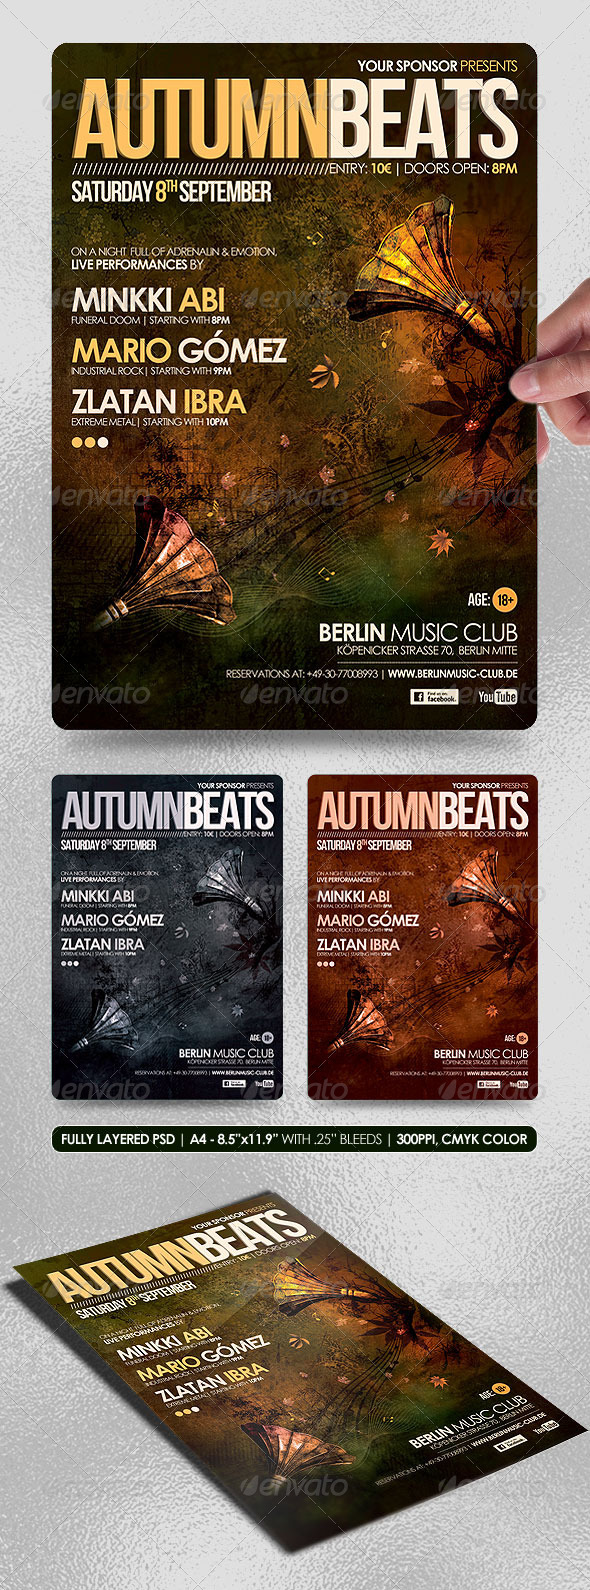 Autumn Beats Poster/Flyer - Concerts Events